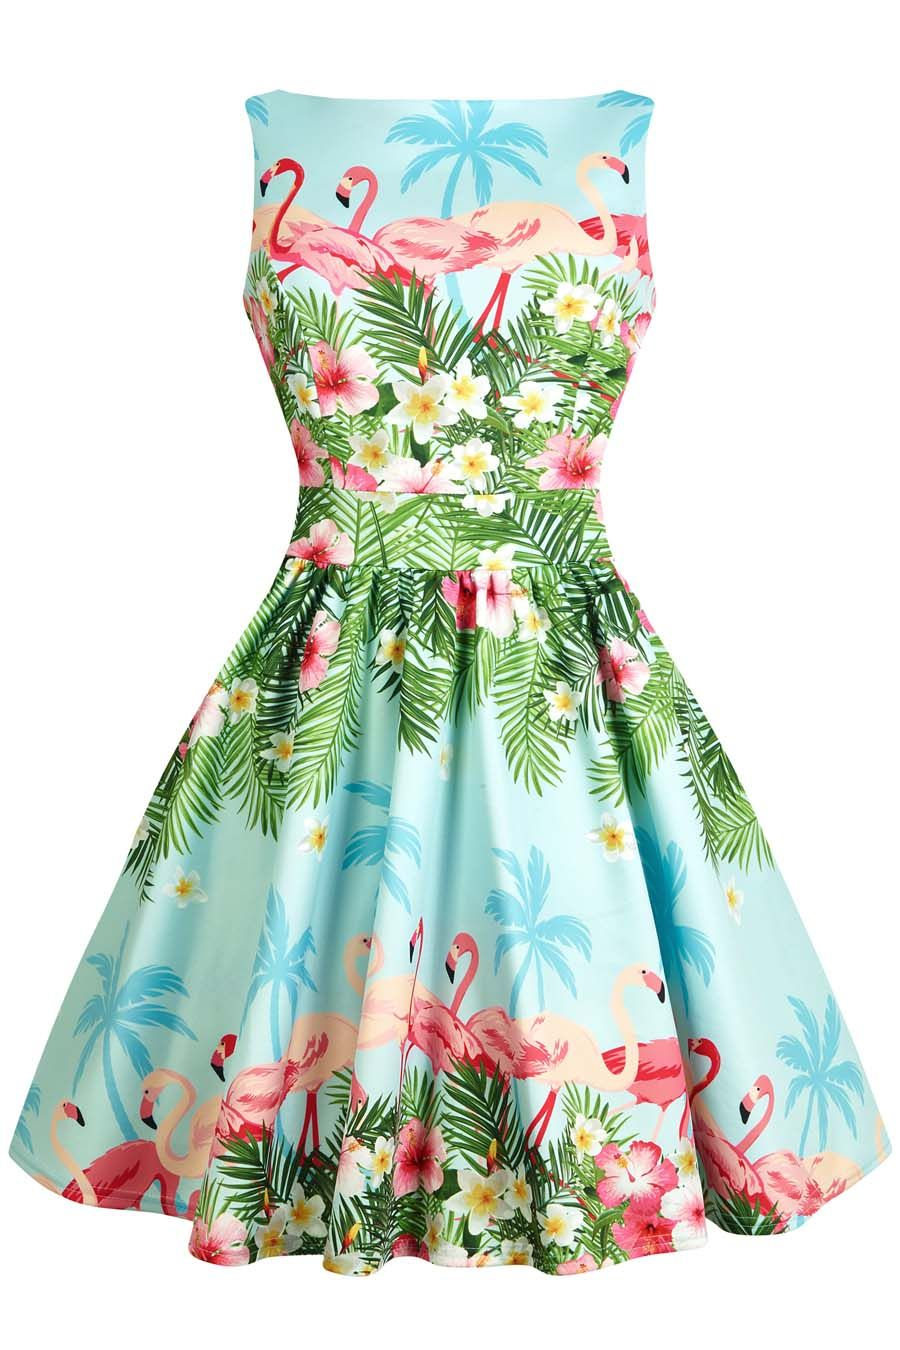 e1b3d4e3627 The 2017 Tea Dress Collection is back in a stunning array of beautiful  prints, exclusive to Lady.